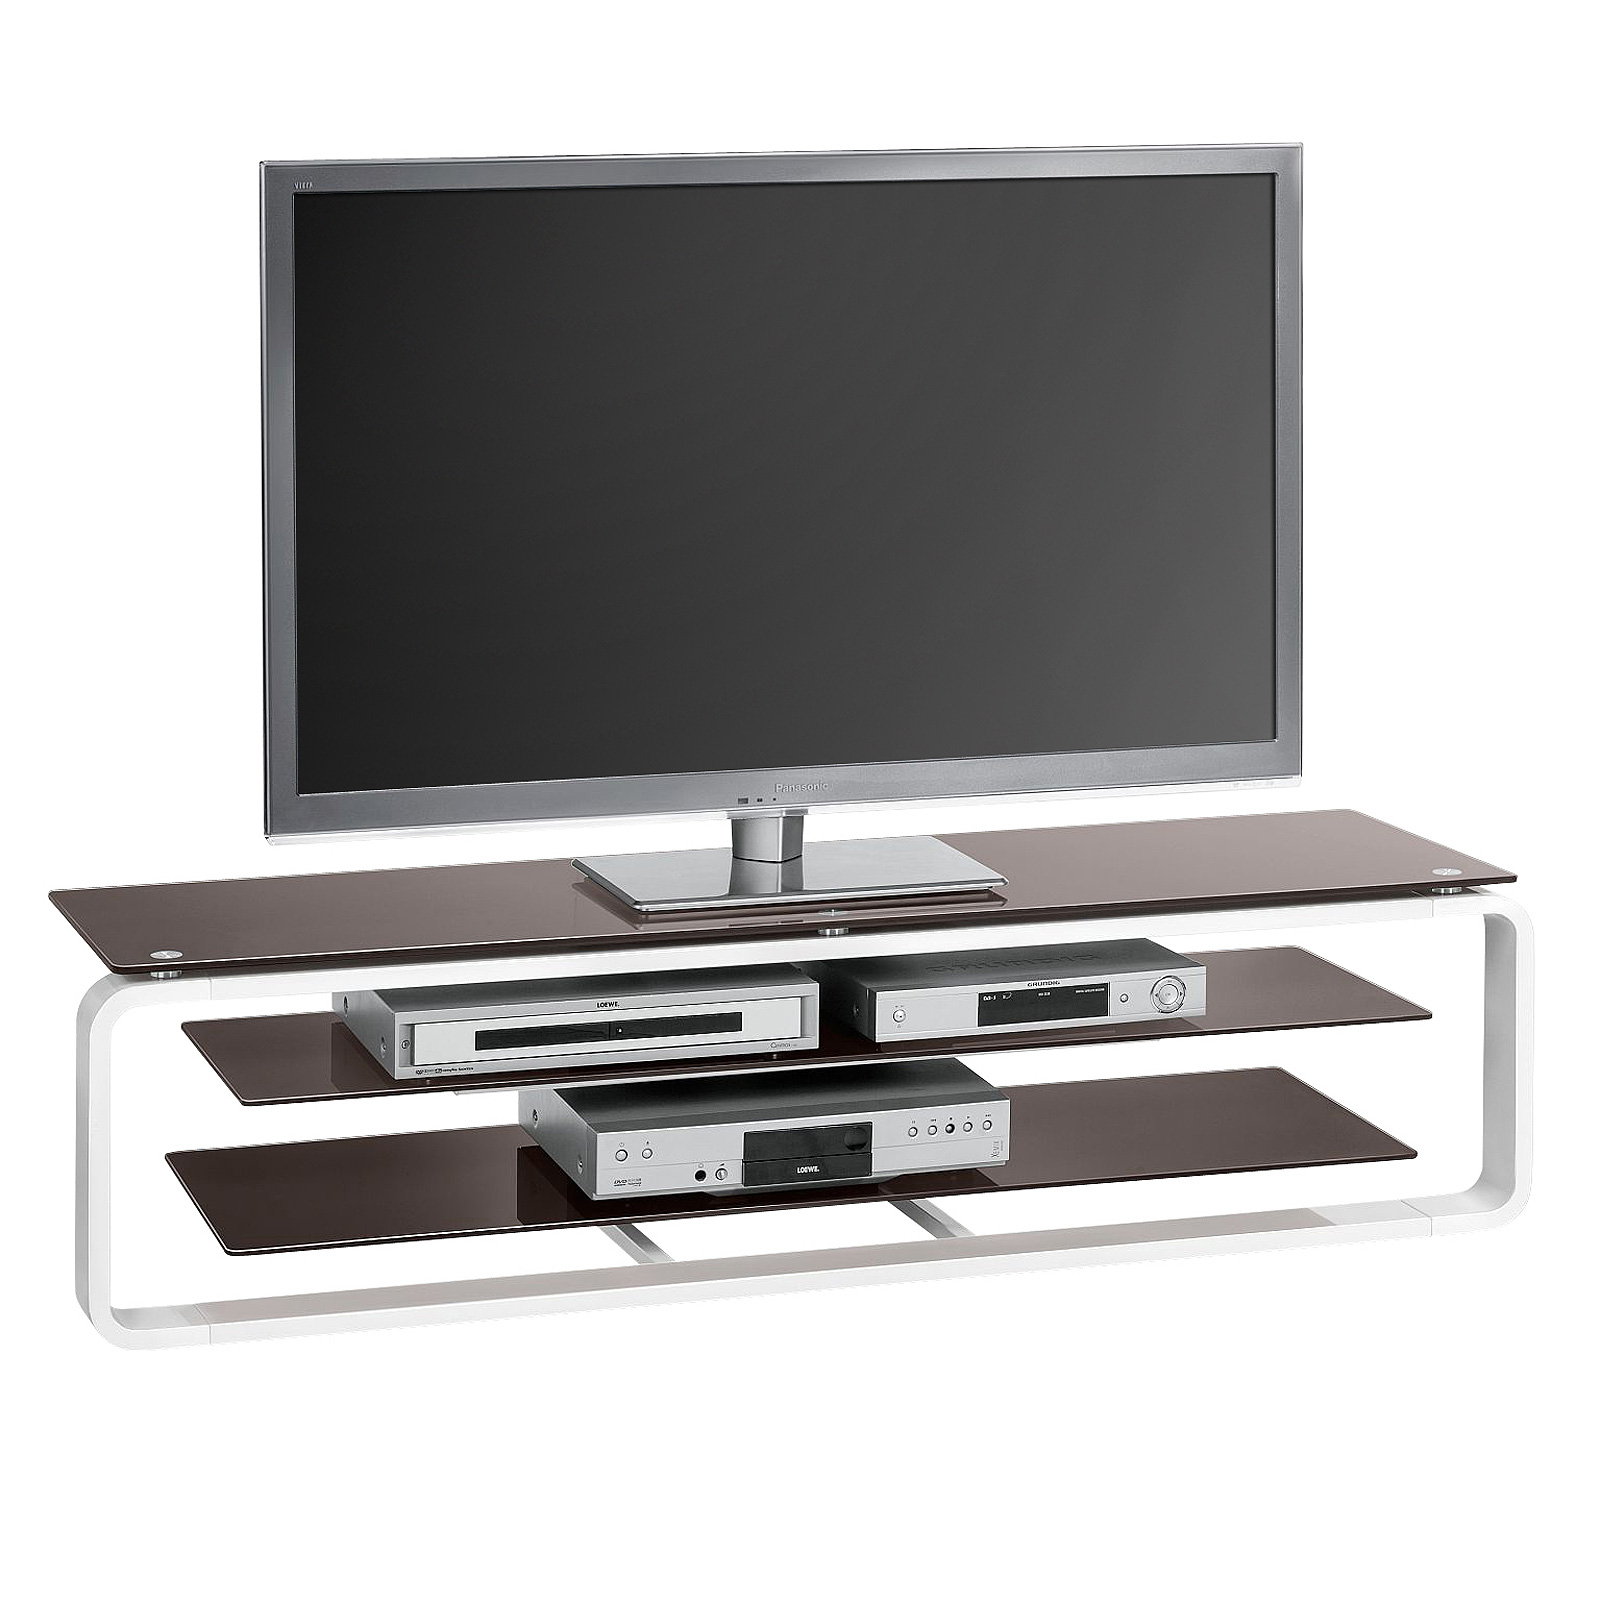 tv board maja 1262 tv rack media hifi lowboard hochglanz und glas farbauswahl ebay. Black Bedroom Furniture Sets. Home Design Ideas